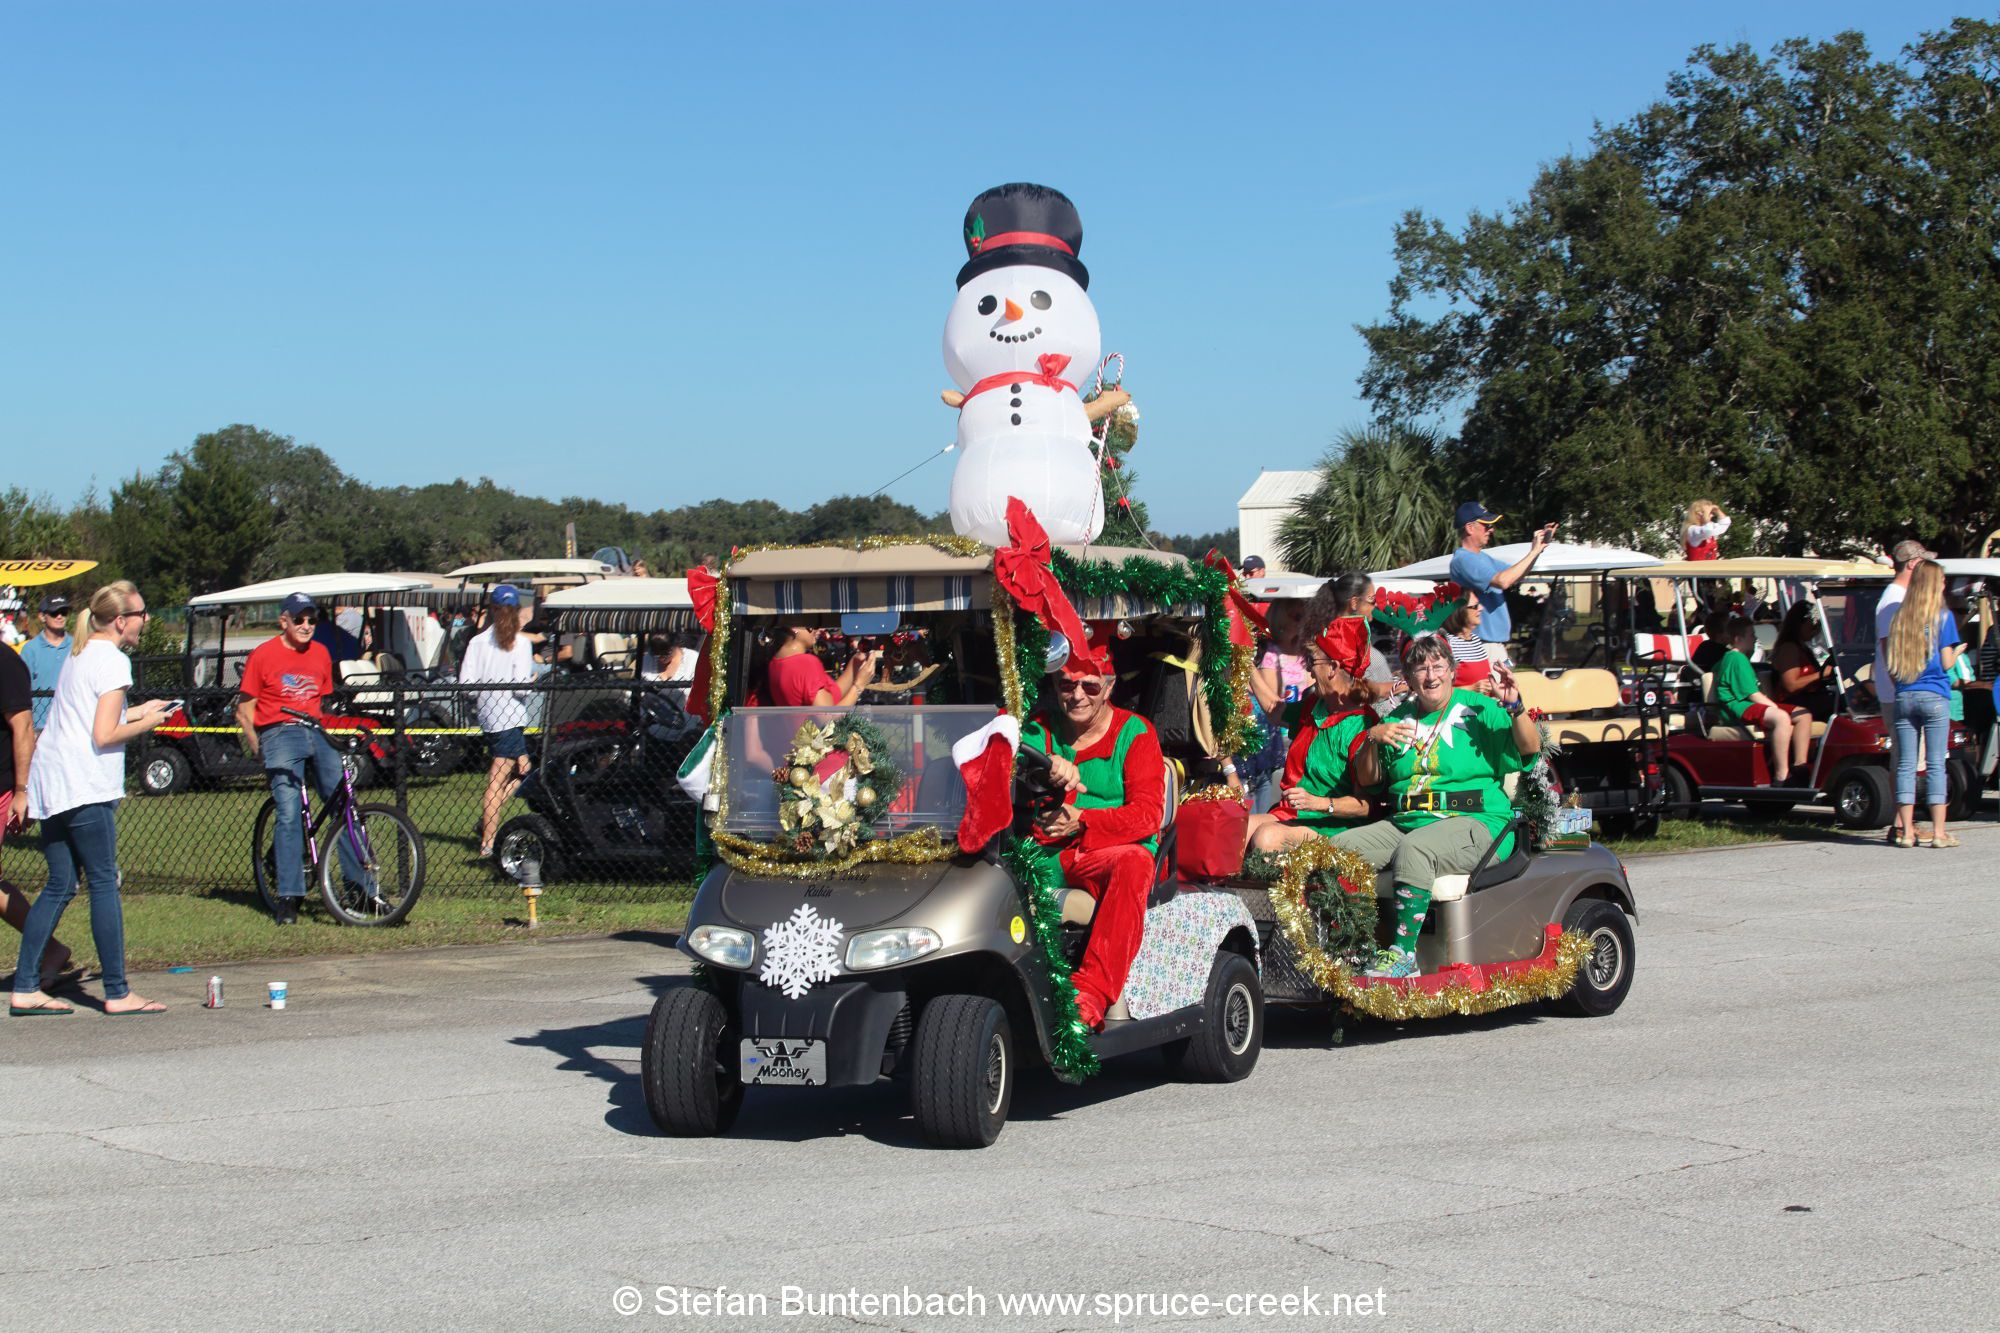 Spruce-Creek-Toyparade-2015- IMG_1514